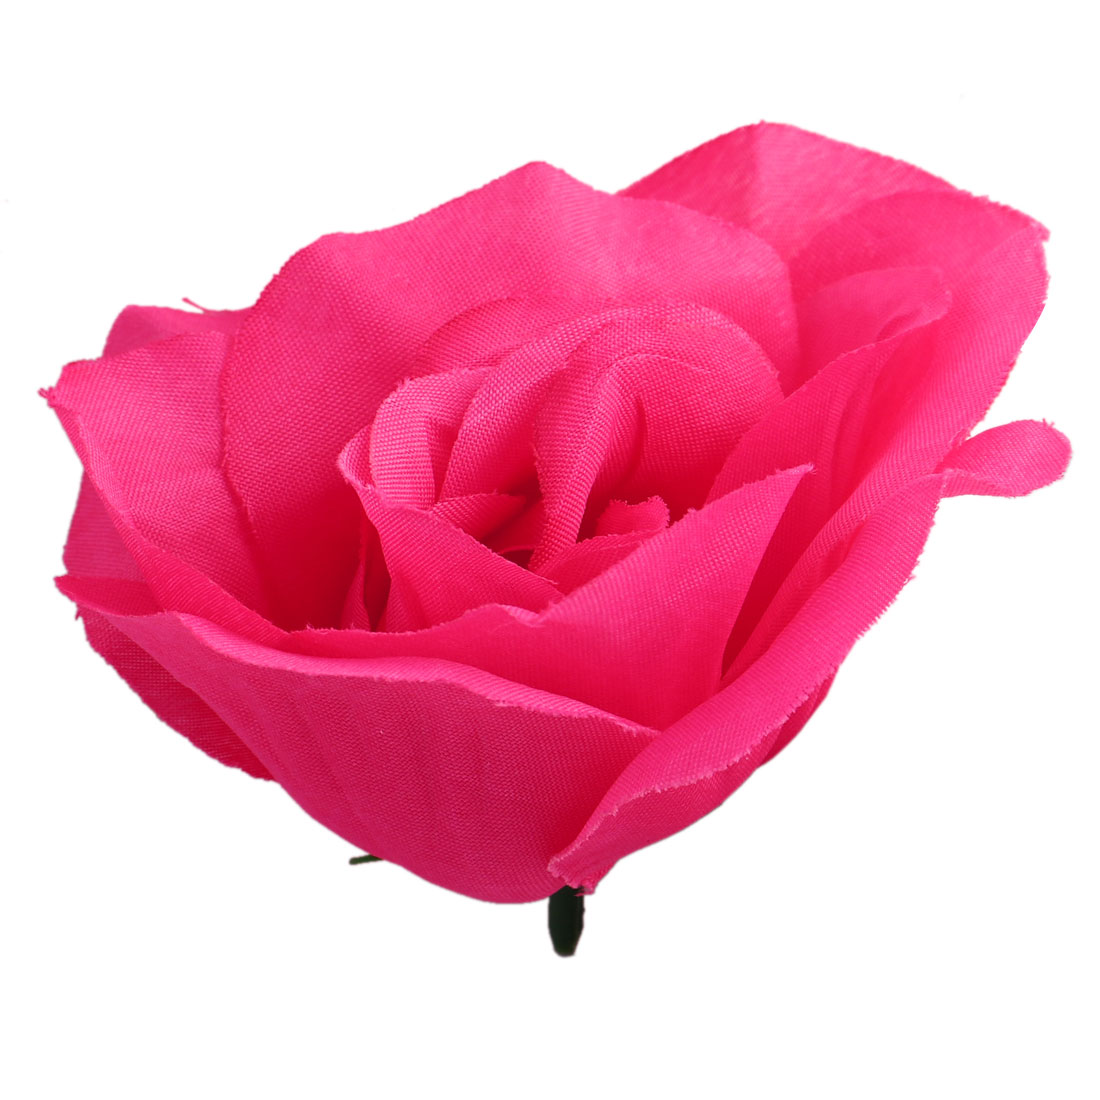 Living Room Table Office Handcraft Artificial Flower Rose Heads Decorations # 3